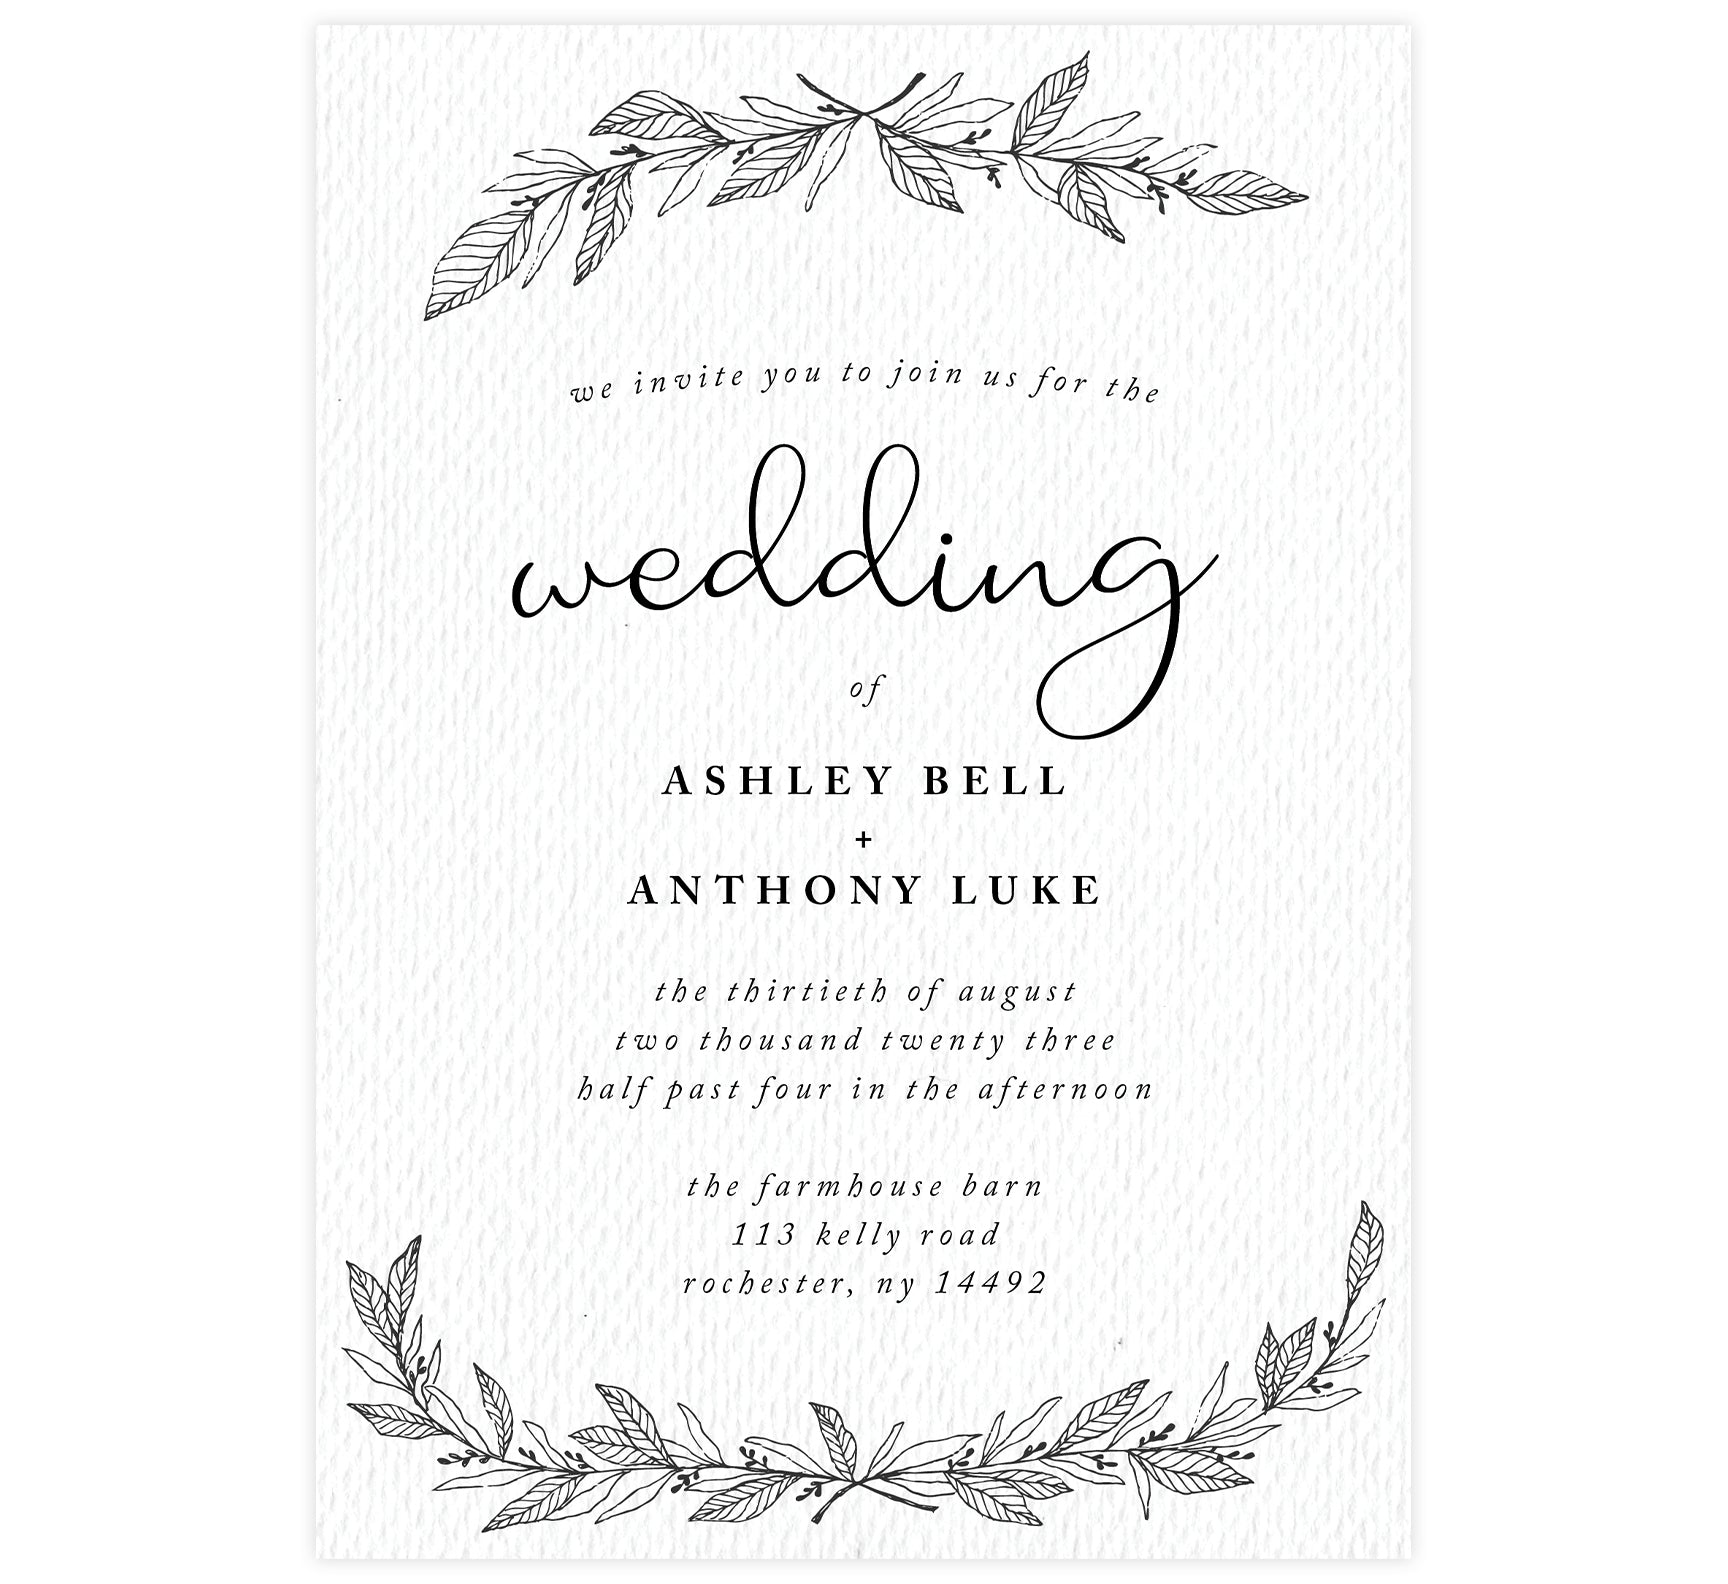 Hand Drawn Ceremony wedding invitation; textured white background with hand drawn leaves at the top and bottom and black text